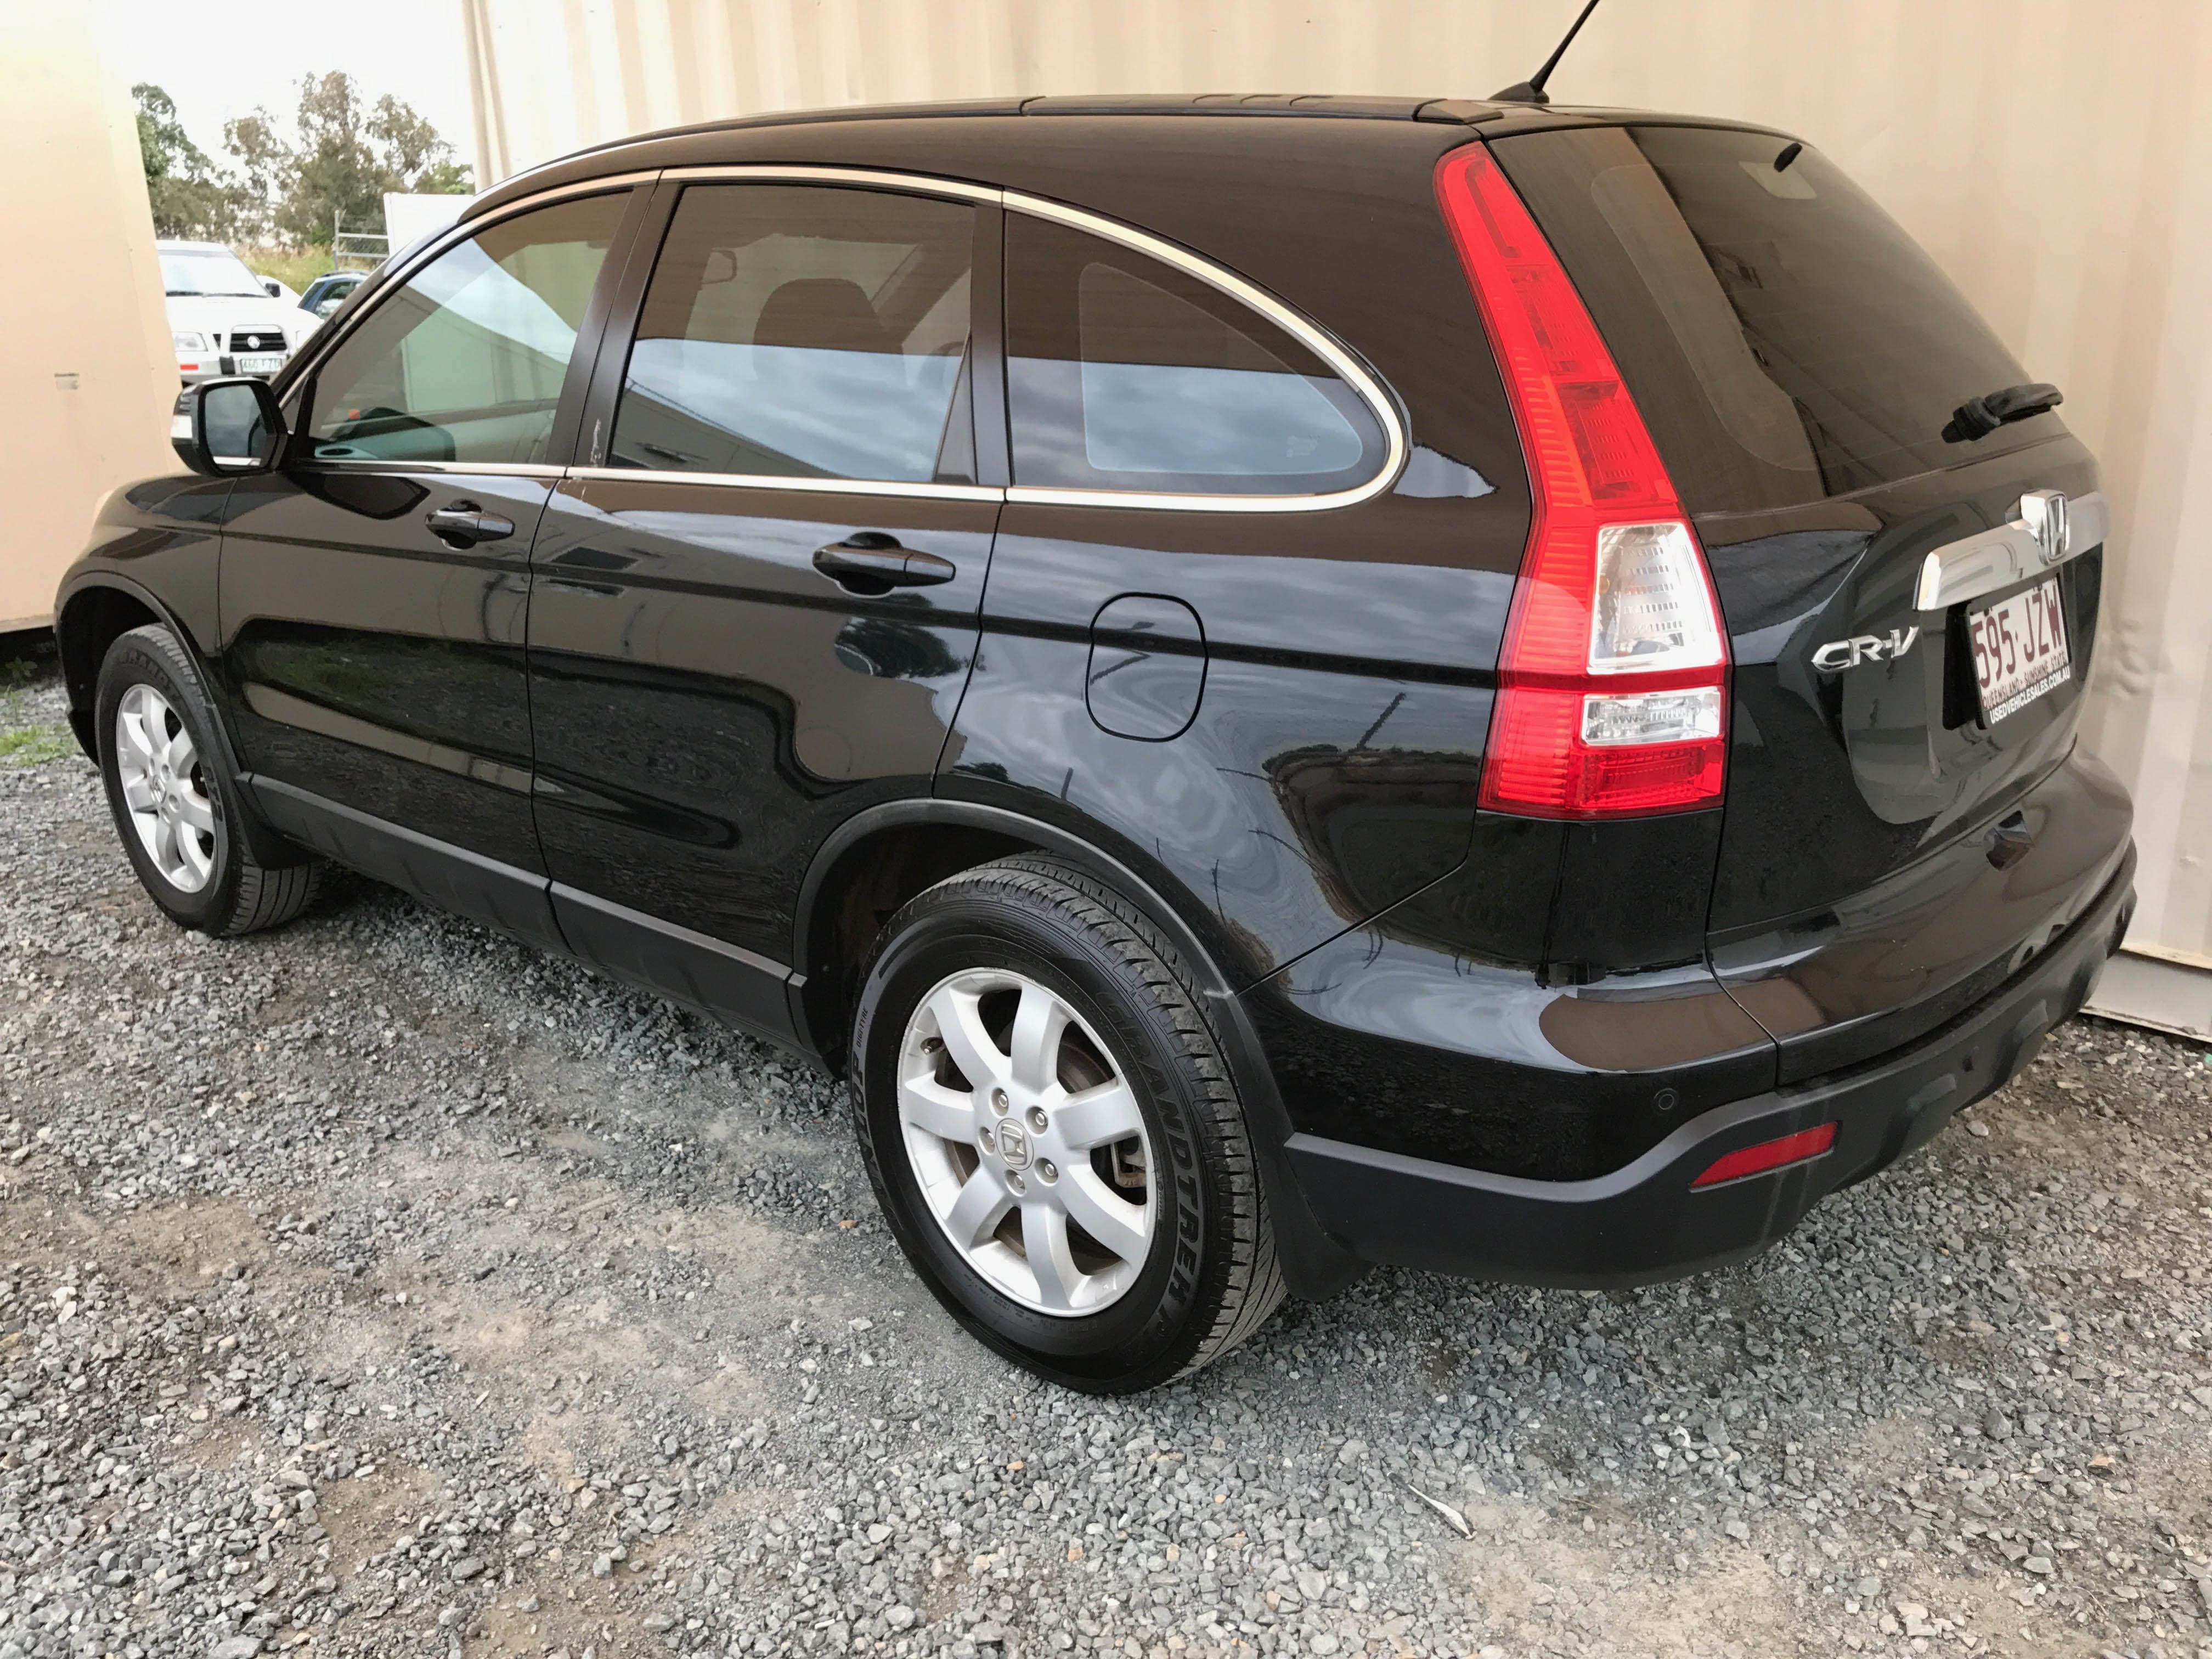 sold automatic 4x4 suv honda cr v 2007 used vehicle sales. Black Bedroom Furniture Sets. Home Design Ideas